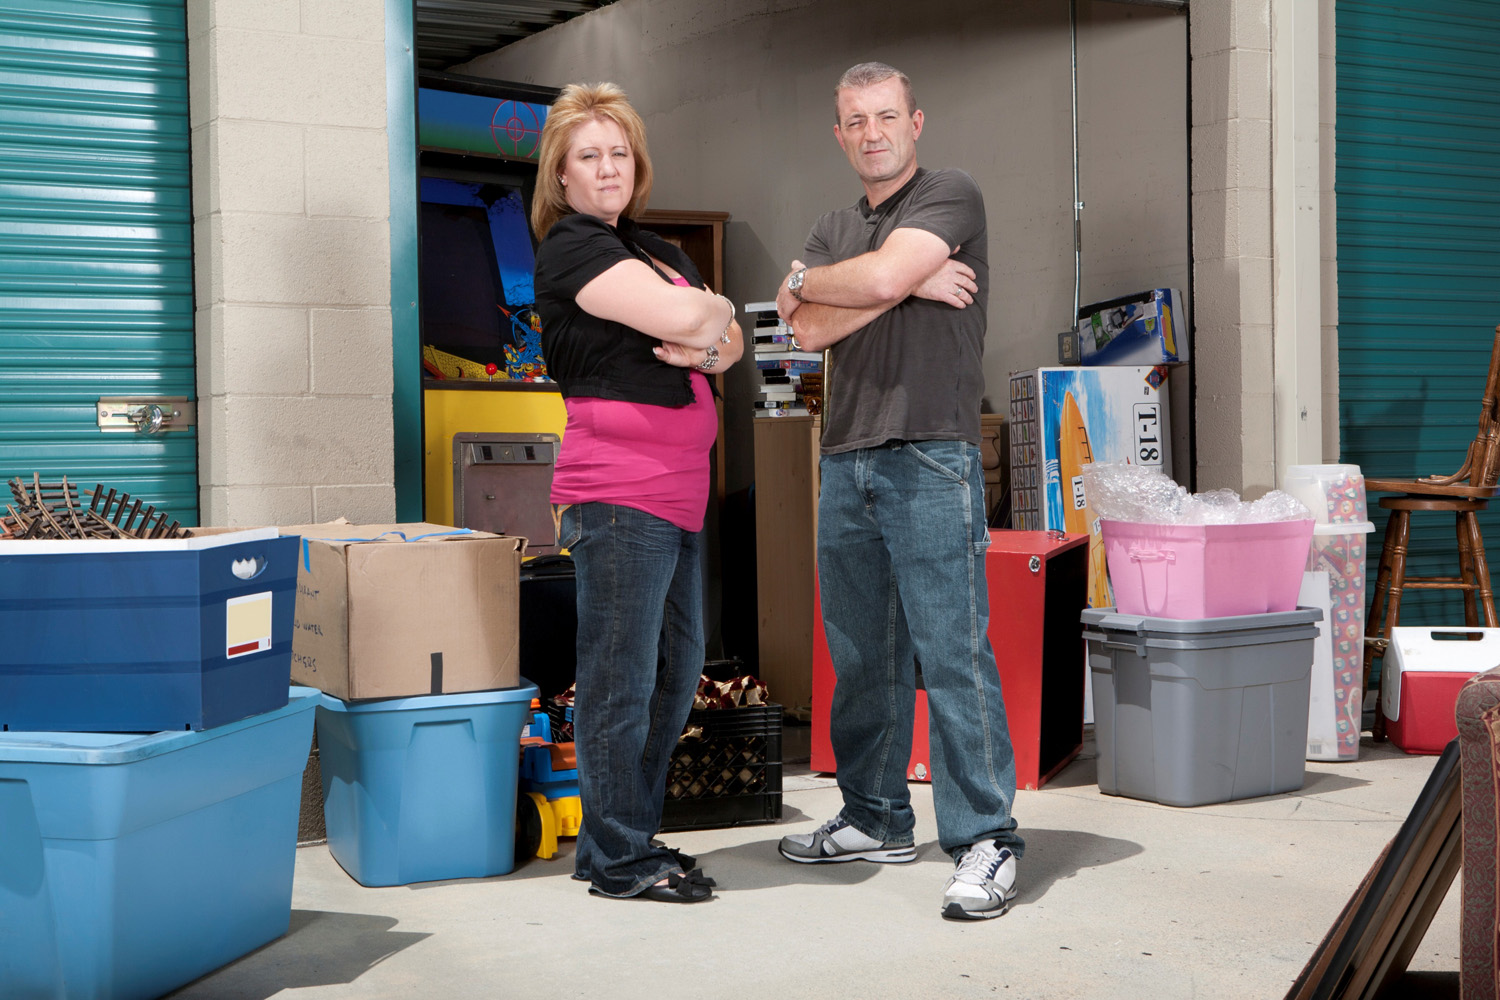 Storage Hunters stars Brandon and Lori tell all: 'We are real' Lori Bernier